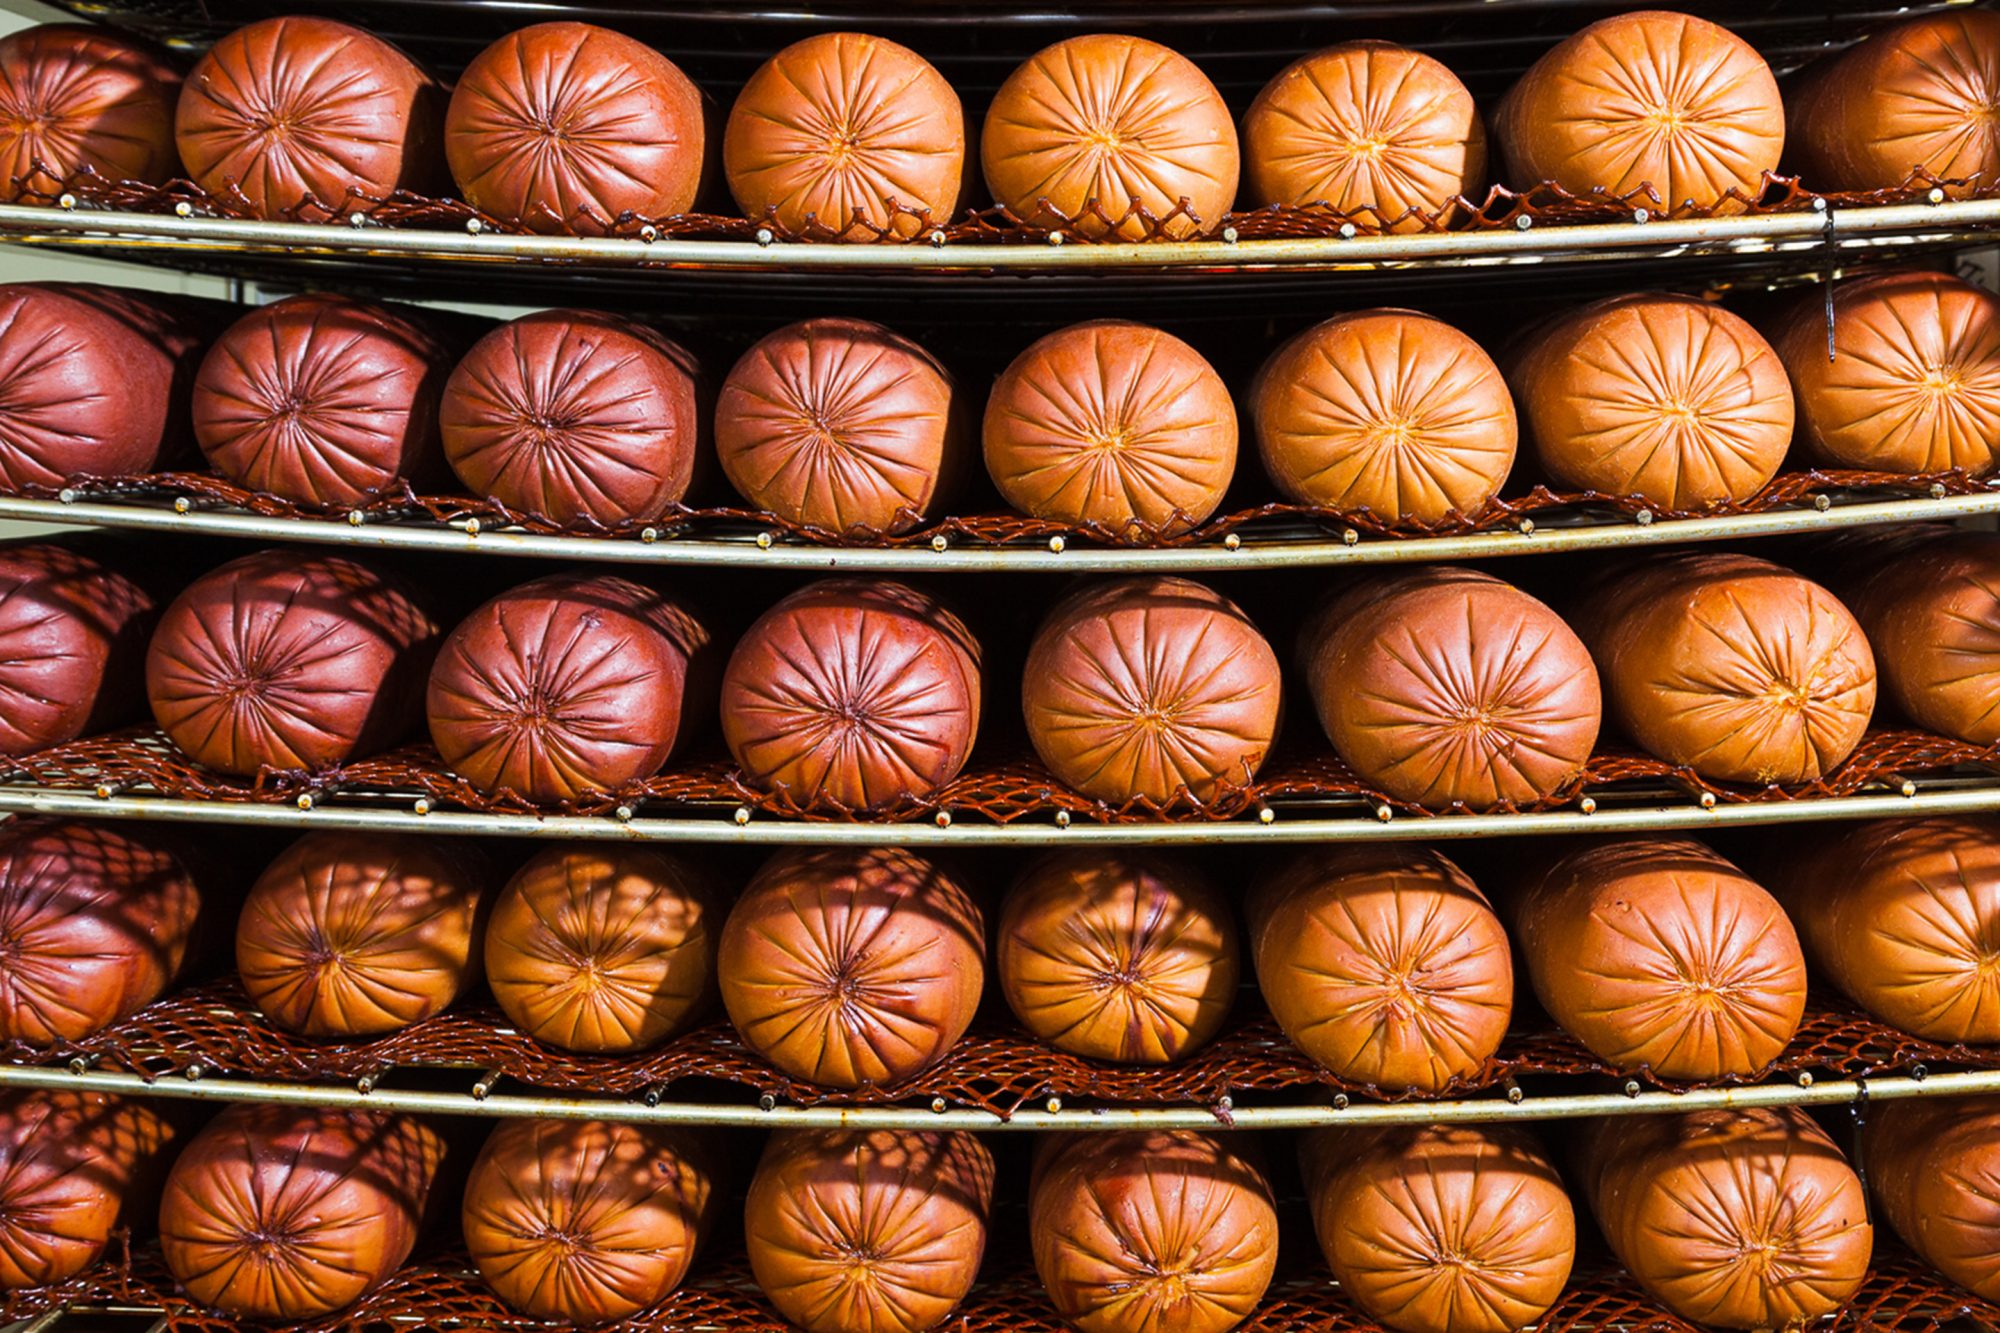 Smoked Hams, awaiting packaging at the Tofurky processing facility in Hood River, Oregon